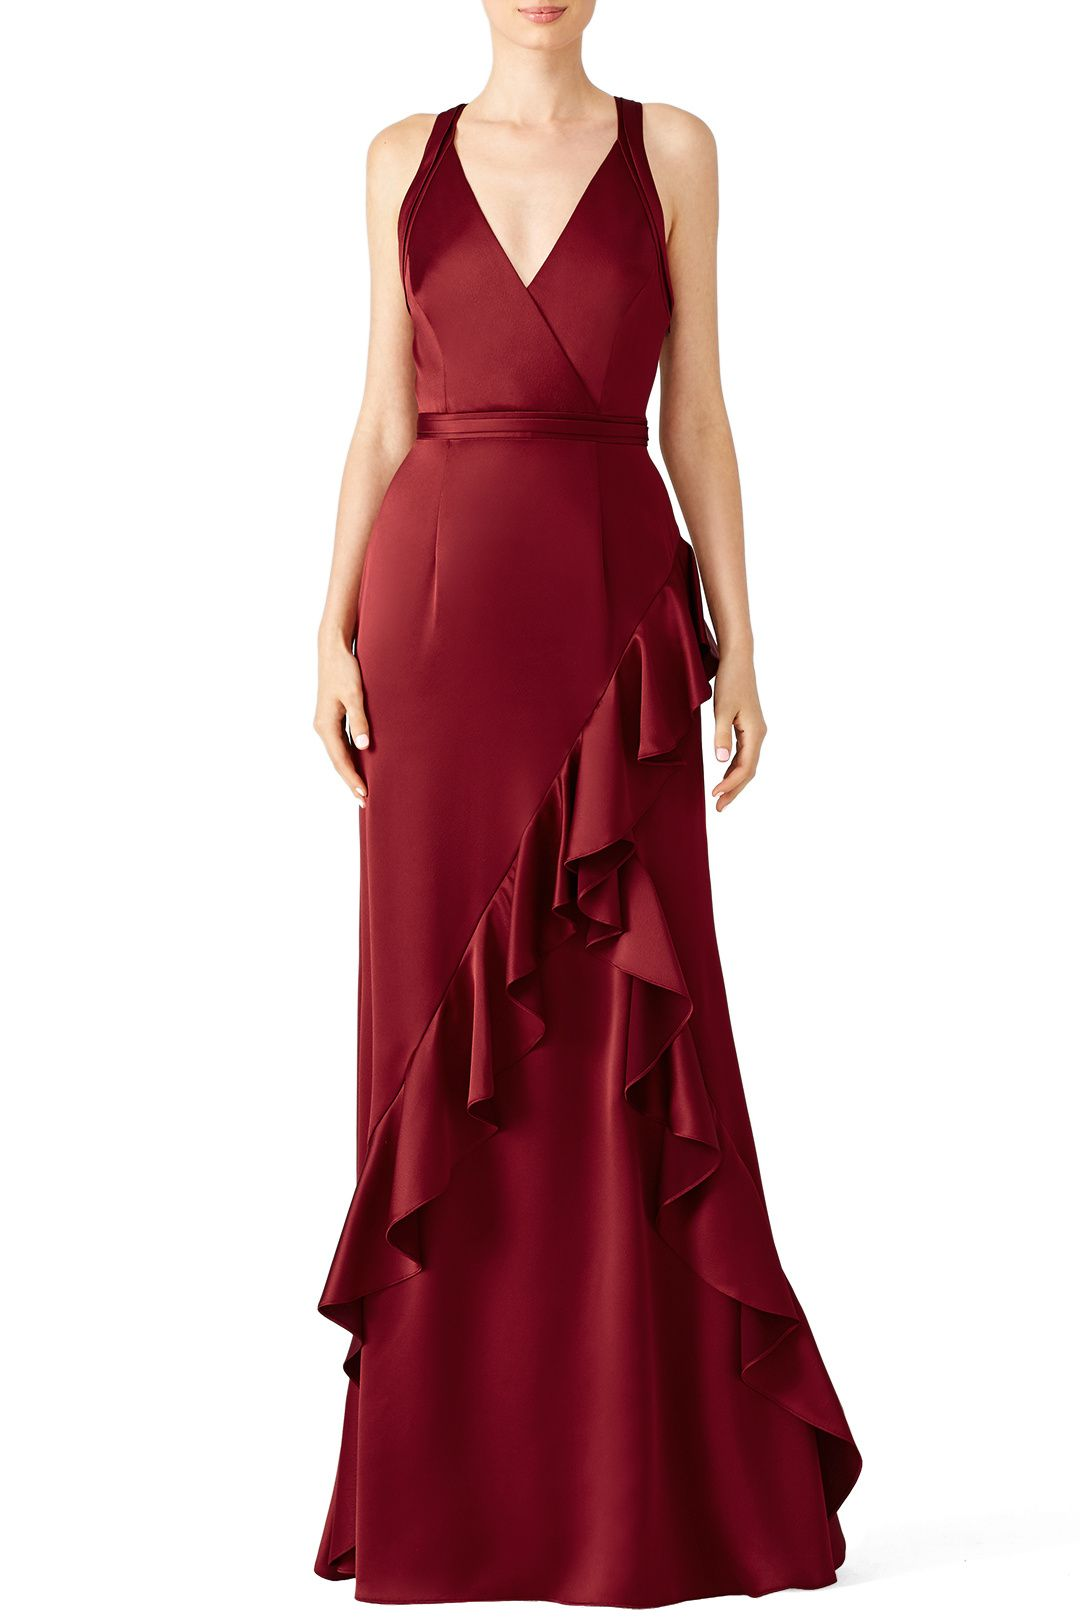 Rent Wine Ruffle Gown By Aidan Mattox For 36 75 95 Only At Rent The Runway Dresses Gowns Evening Dresses